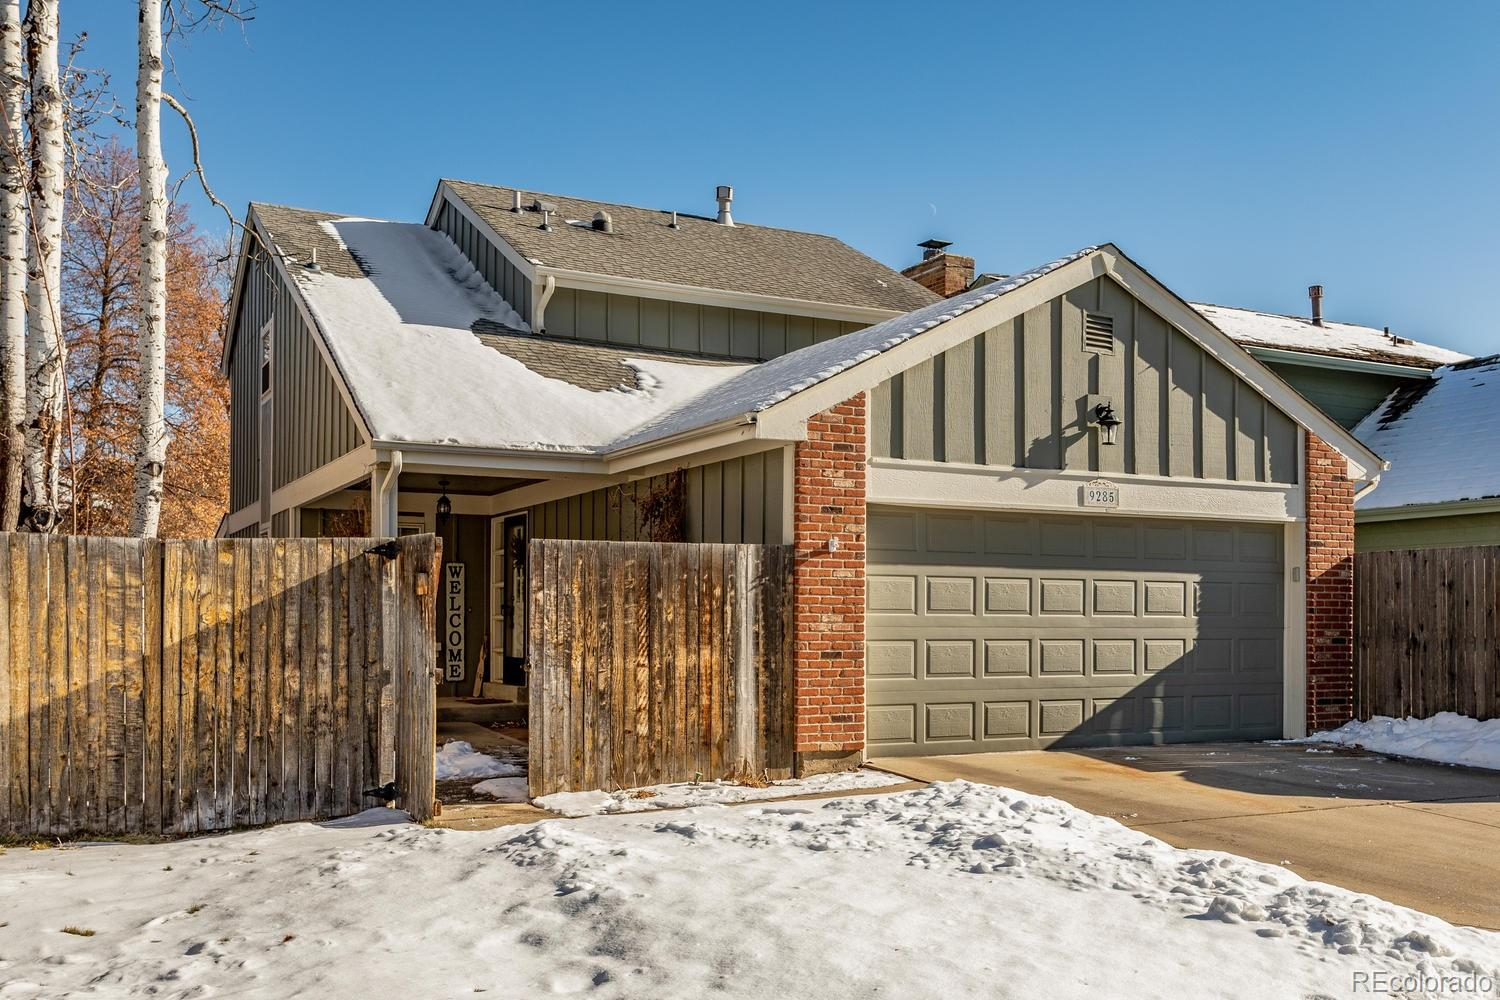 MLS# 6117171 - 2 - 9285 W 87th Place, Arvada, CO 80005